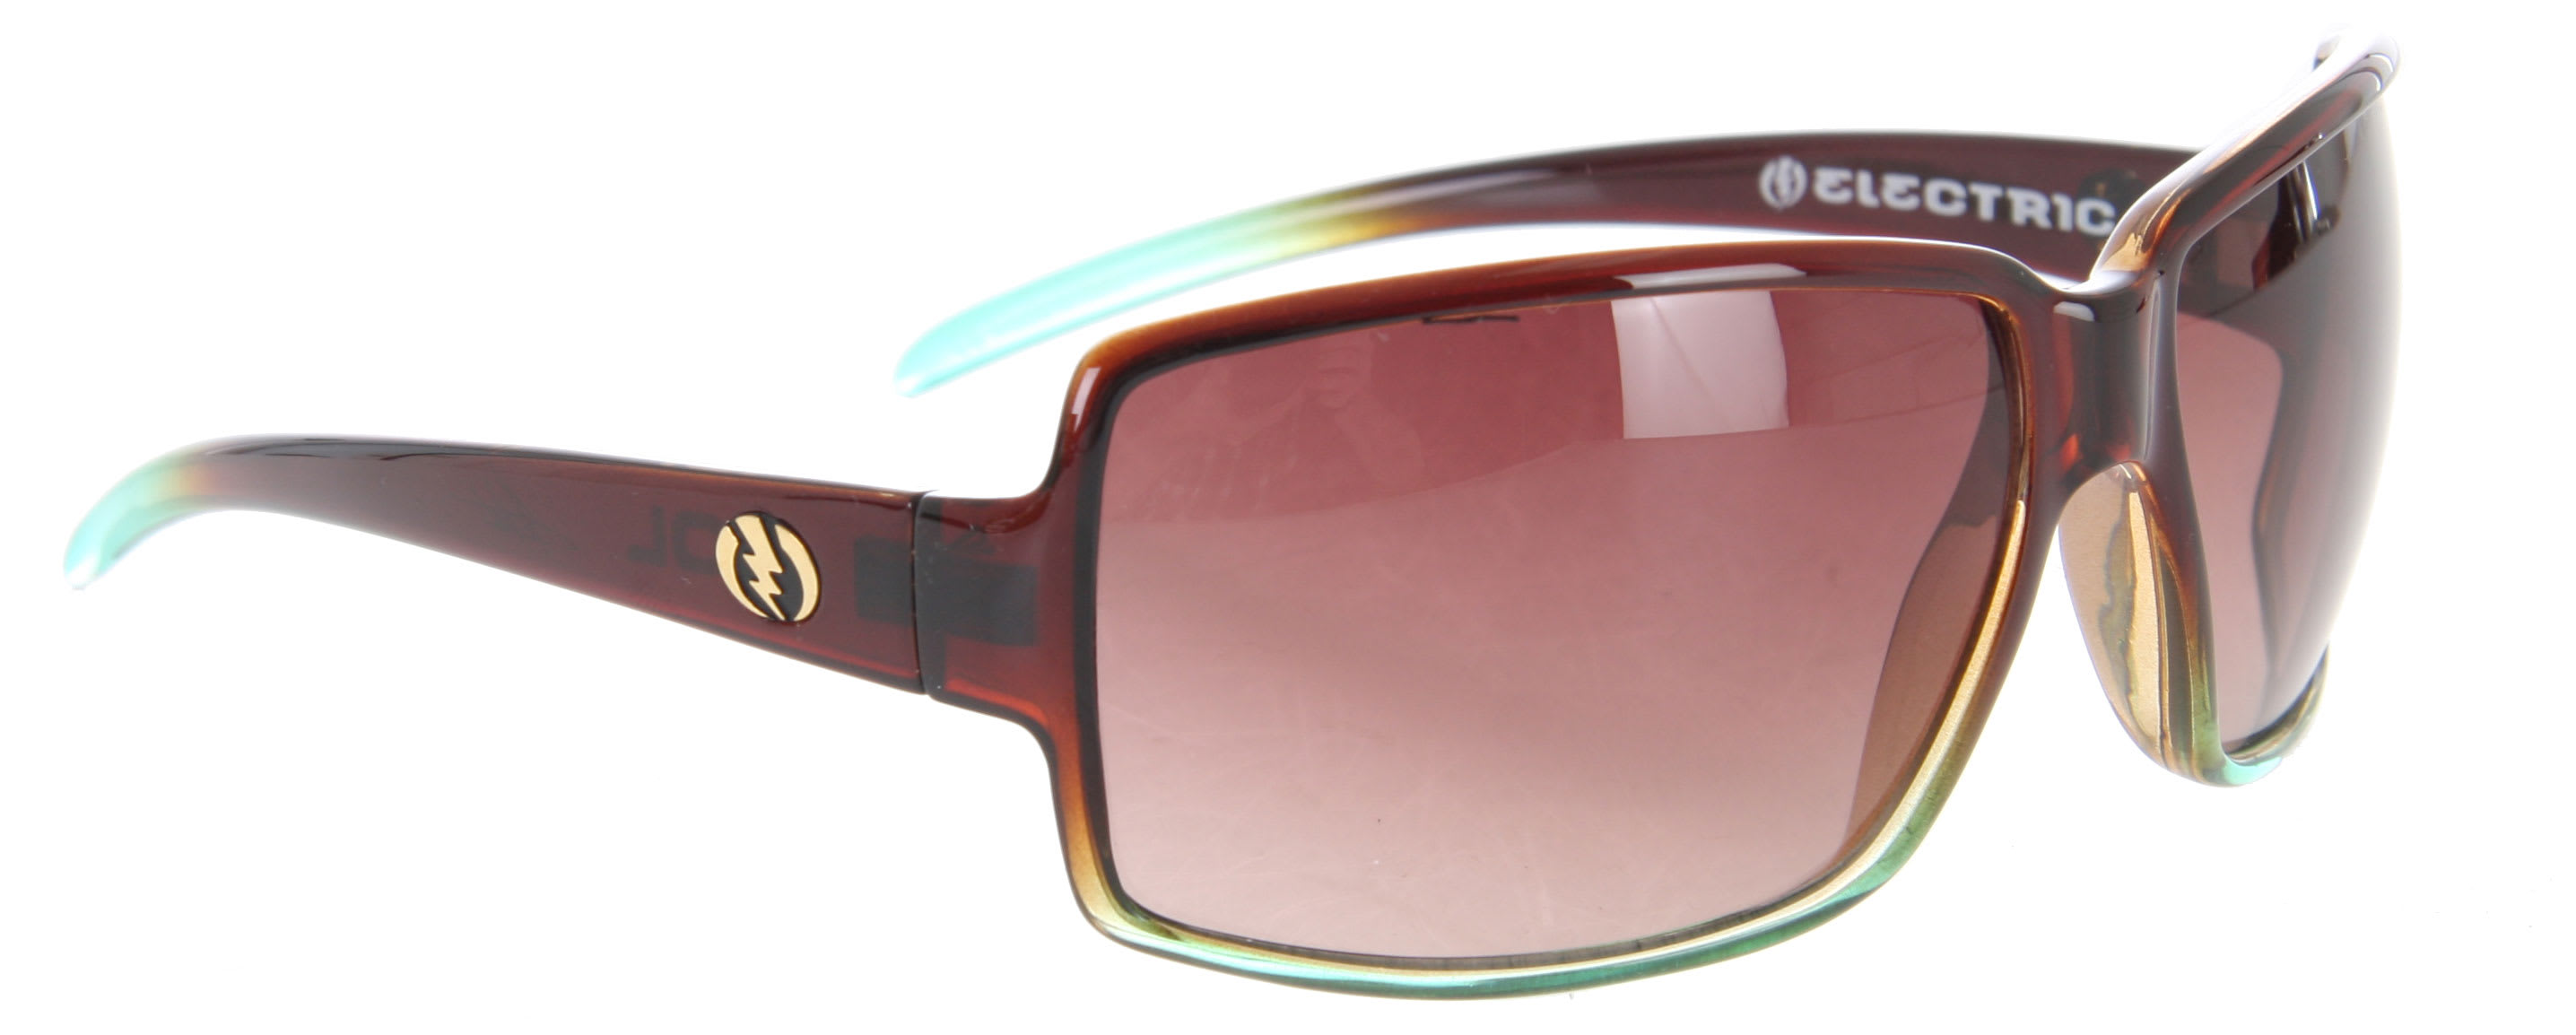 Electric Vol Sunglasses Brown Mint Fade/Brown Gradient Lens - Women's